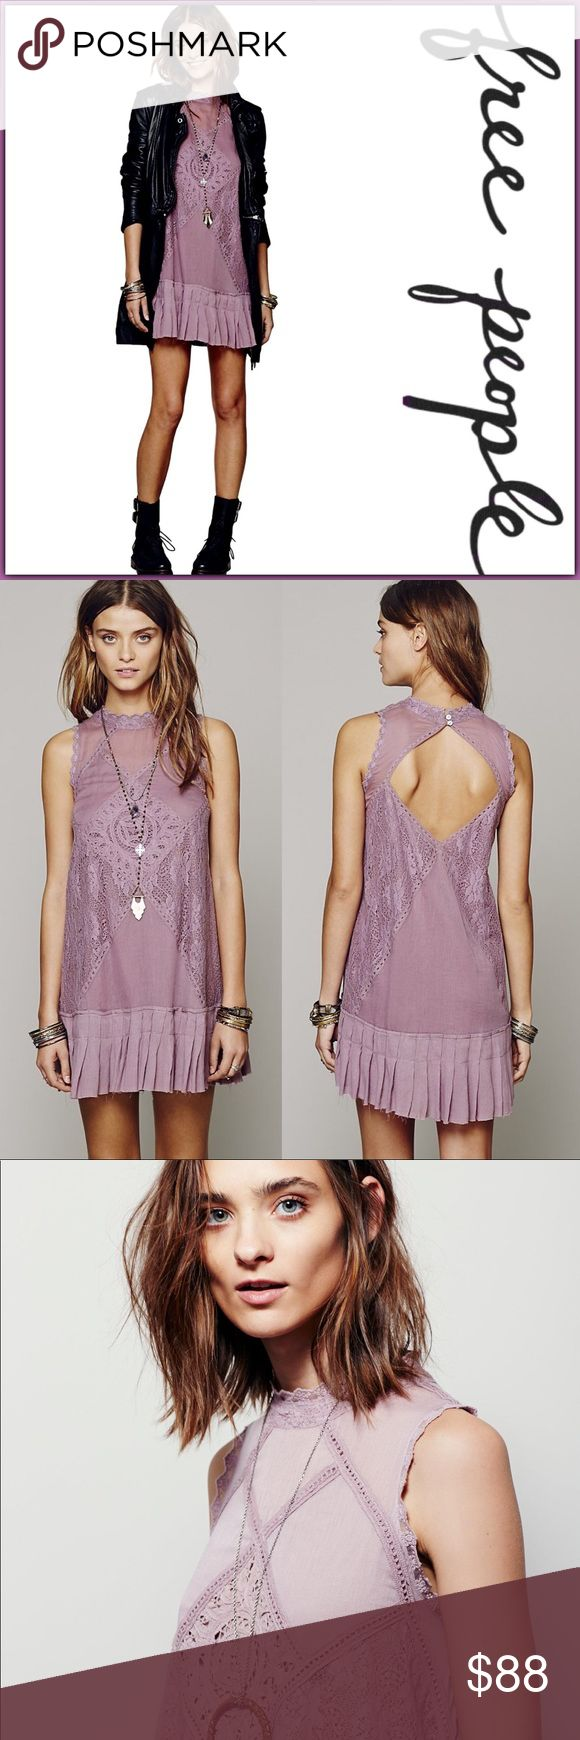 NWT Free People Angel Lace Tunic Mini Dress ➖NWT ➖BRAND: Free People ➖SIZE: Medium ➖STYLE: Angel Lace Dress In Elderberry : new with tags - pieced together Lace and crochet dropwaist dress with raw edge pleated bottom hem. Featuring a high collar neckline and open back cutout detailing. Lined with a 2 button closure at the back of the neck.  ➖MATERIAL: 100% cotton   Homecoming prom short club cocktail club tank    ❌ NO TRADE    Entropycat Free People Dresses Mini